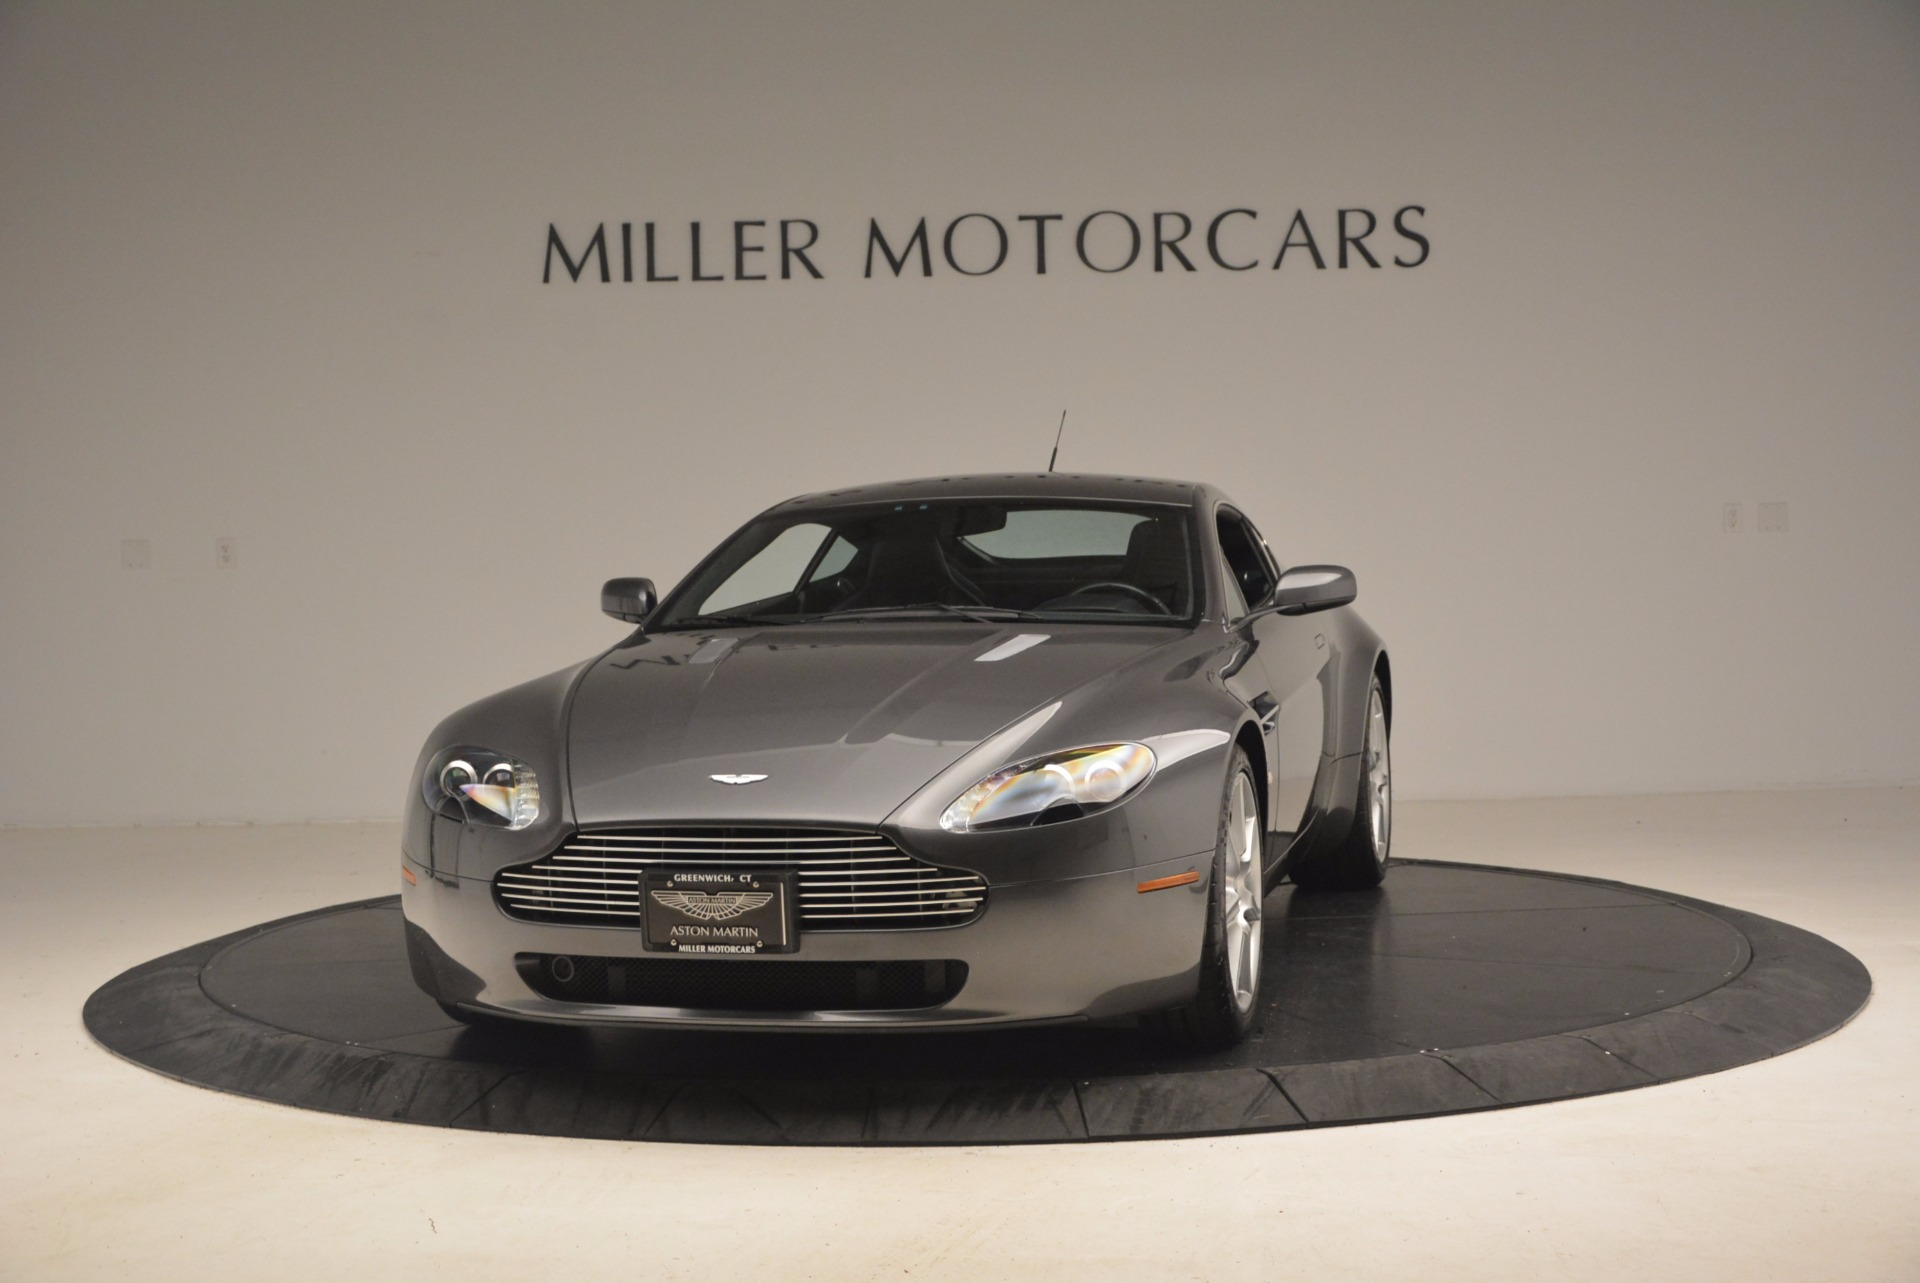 Used 2006 Aston Martin V8 Vantage Coupe for sale Sold at Bugatti of Greenwich in Greenwich CT 06830 1